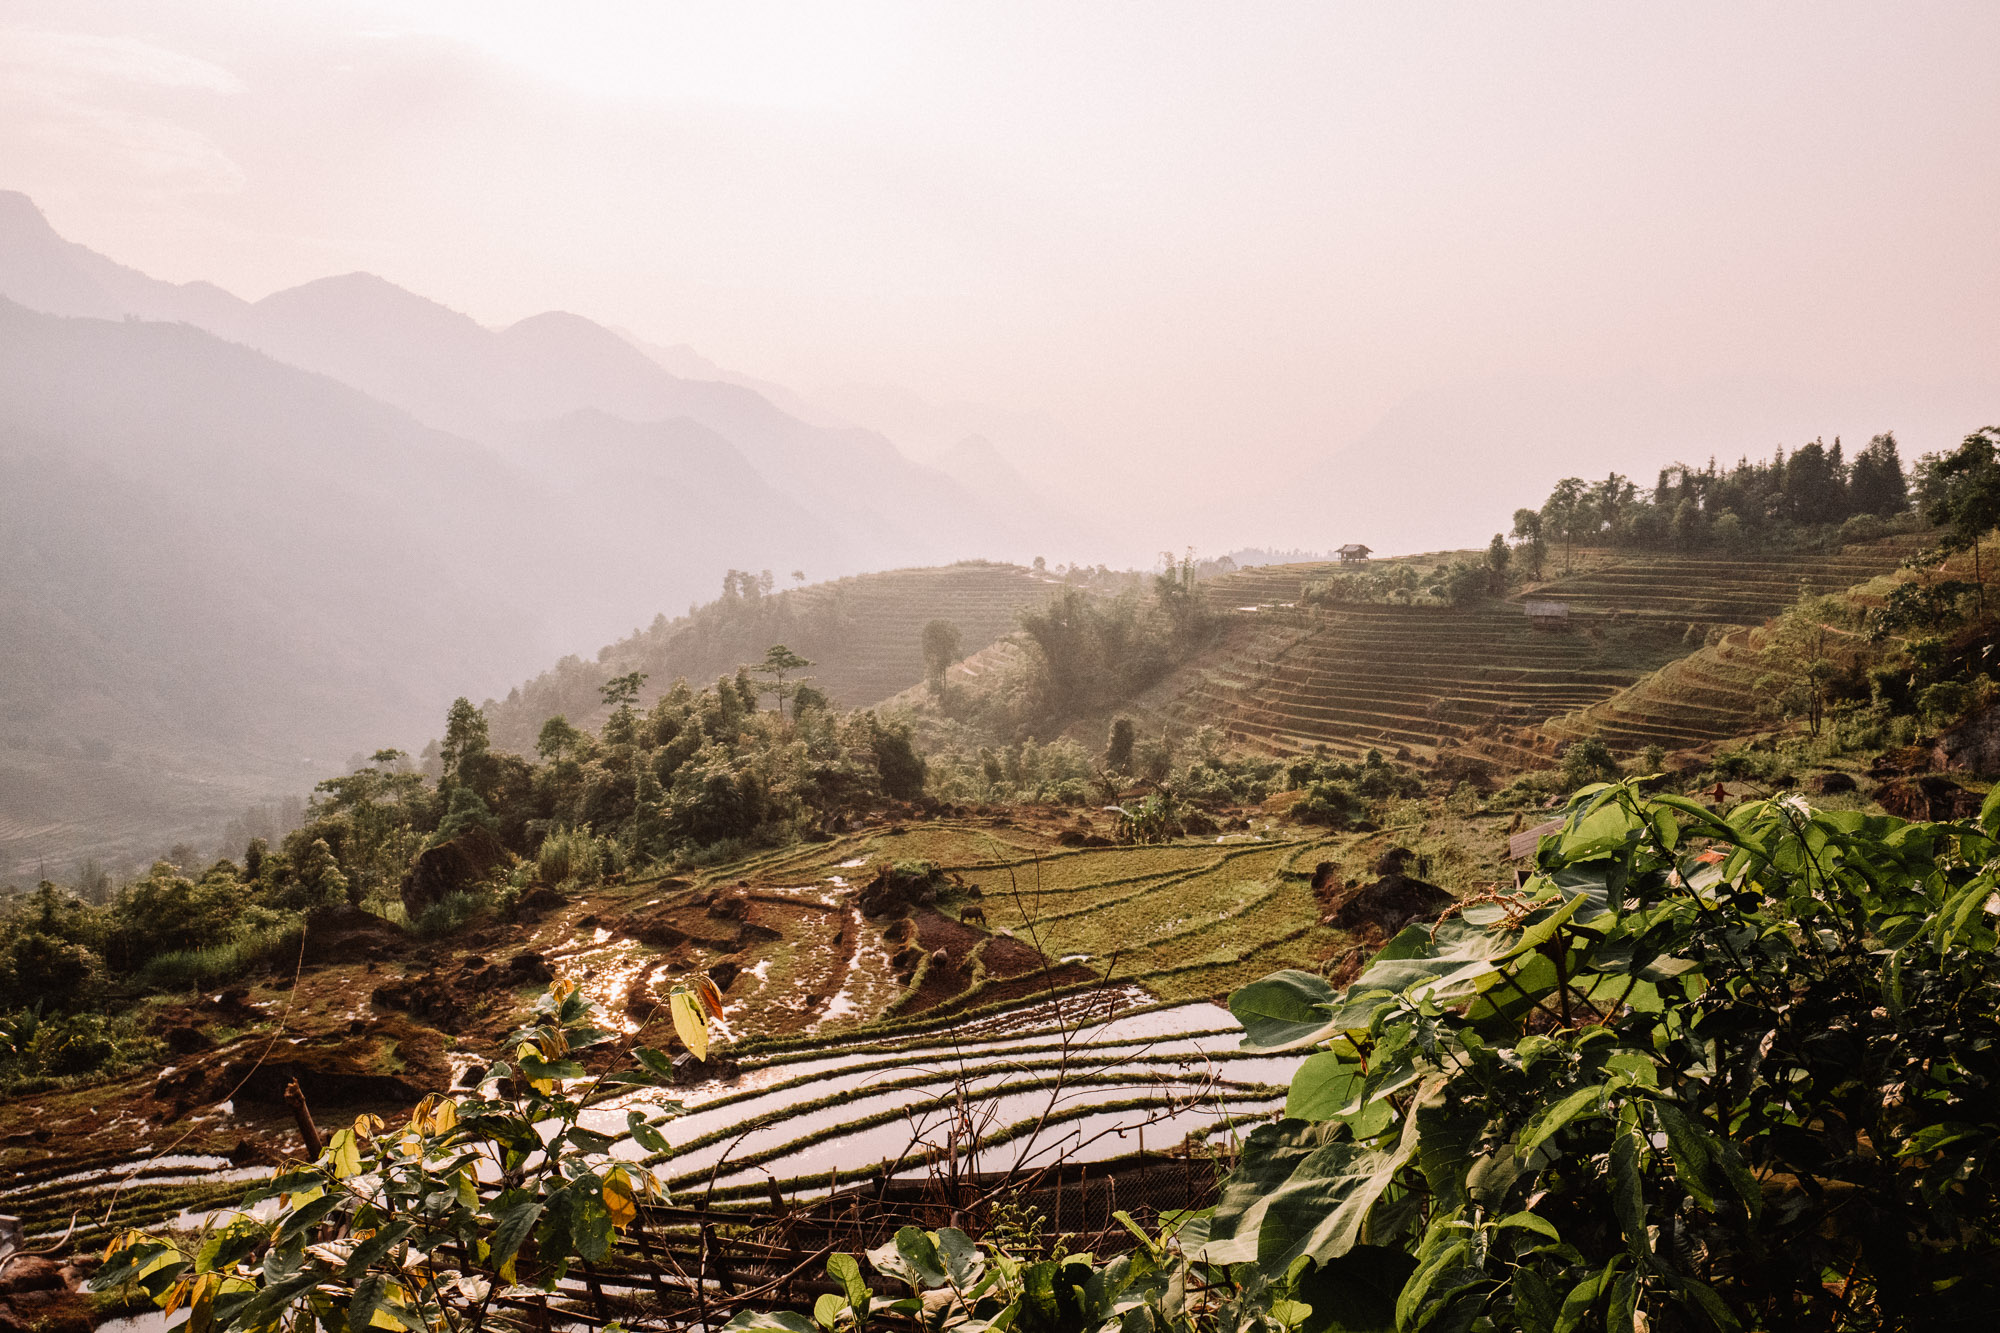 Sunset over the rice fields in Sapa Vietnam